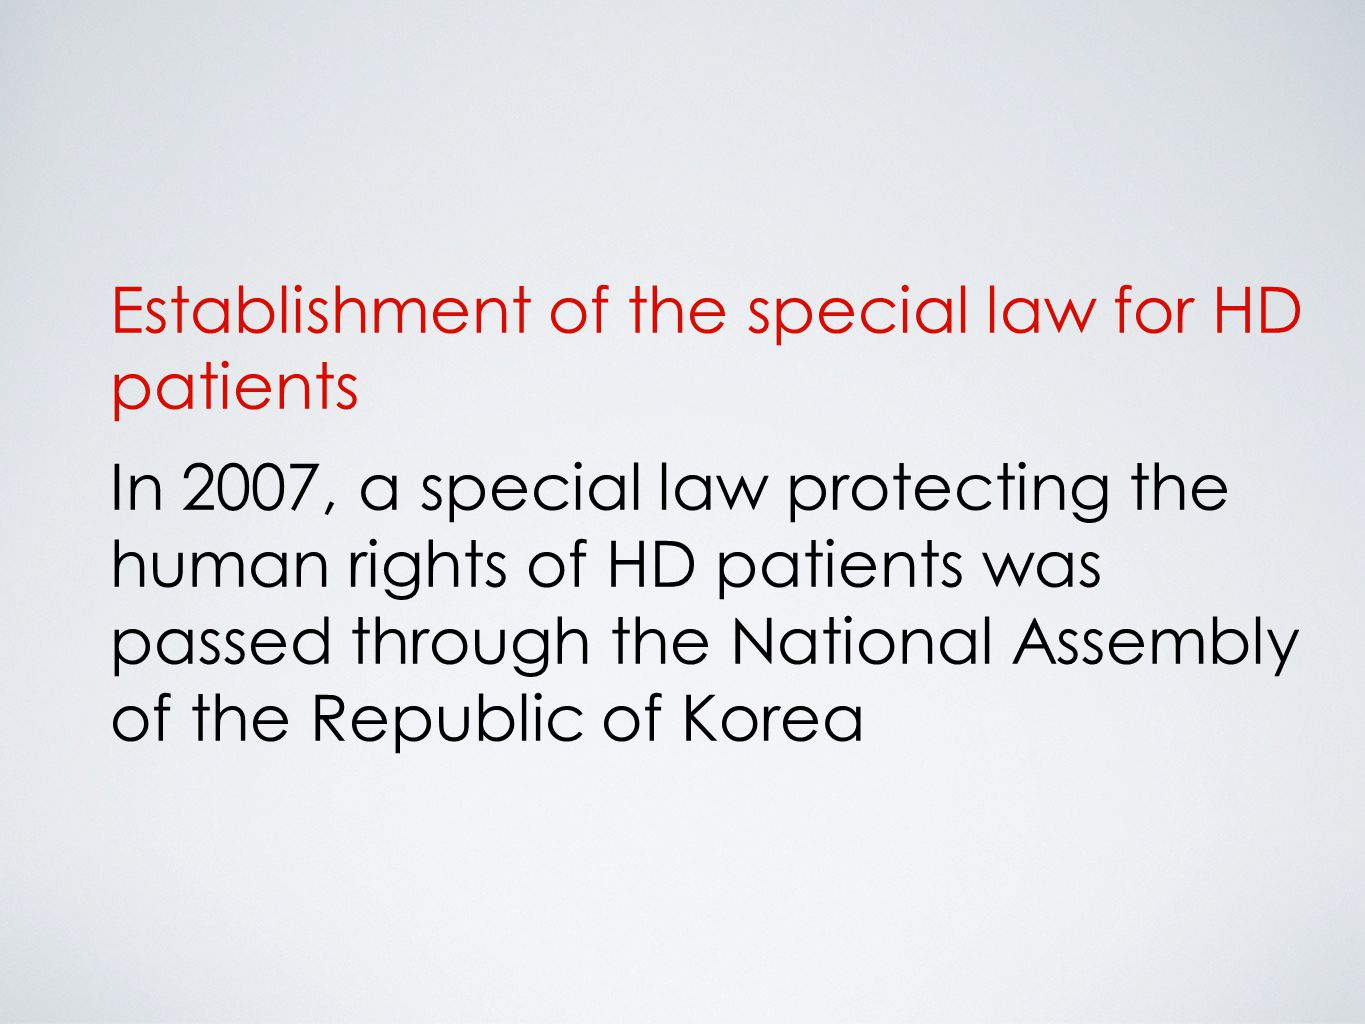 Establishment of the special law for HD patients In 2007, a special law protecting the human rights of HD patients was passed through the National Assembly of the Republic of Korea